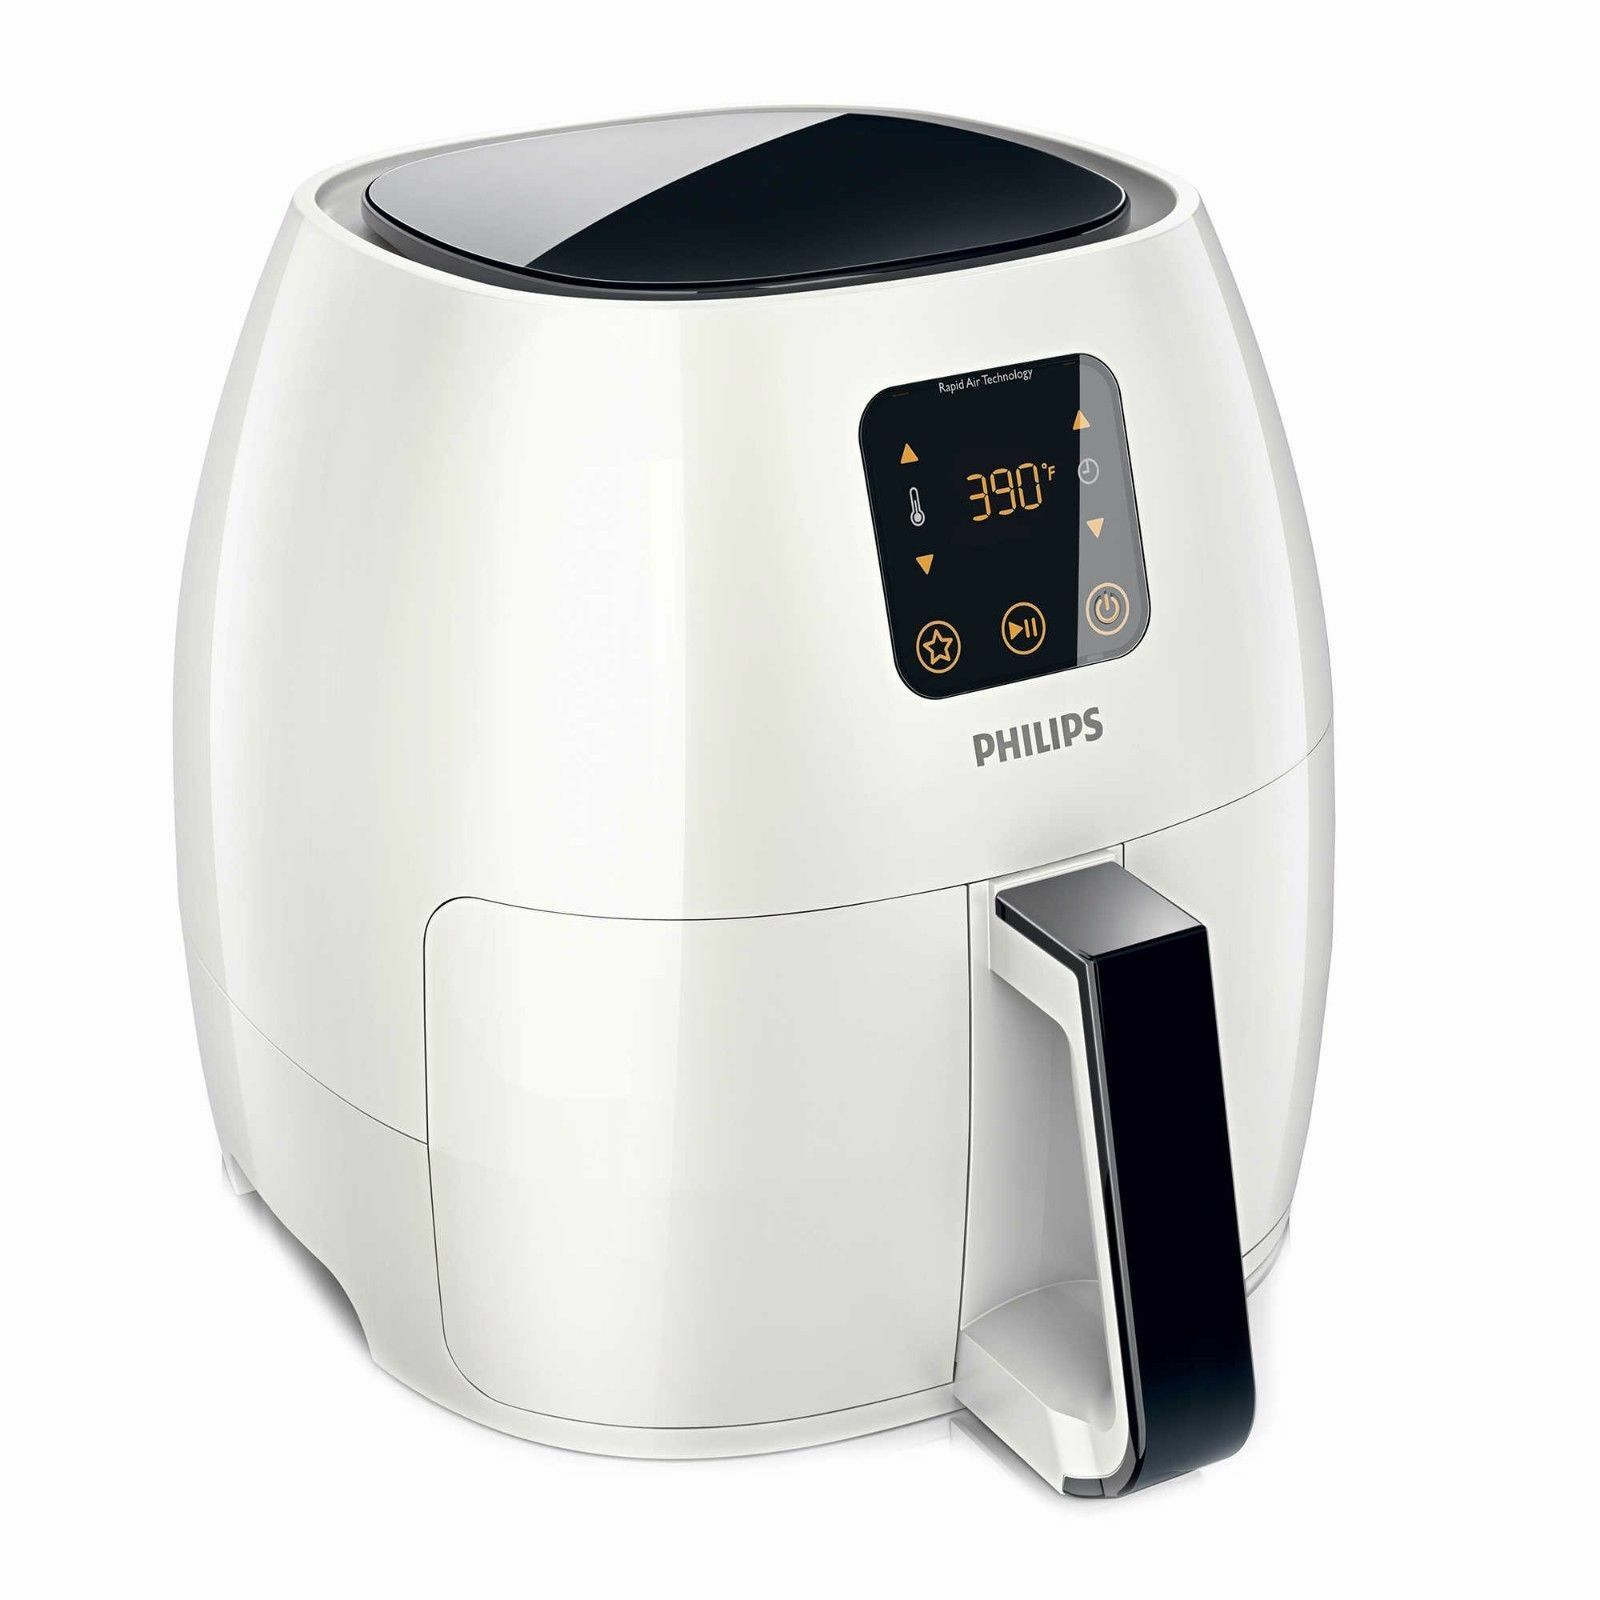 Philips Viva Avance Digital Electric AirFryer Healthy Cooking  - WHITE New